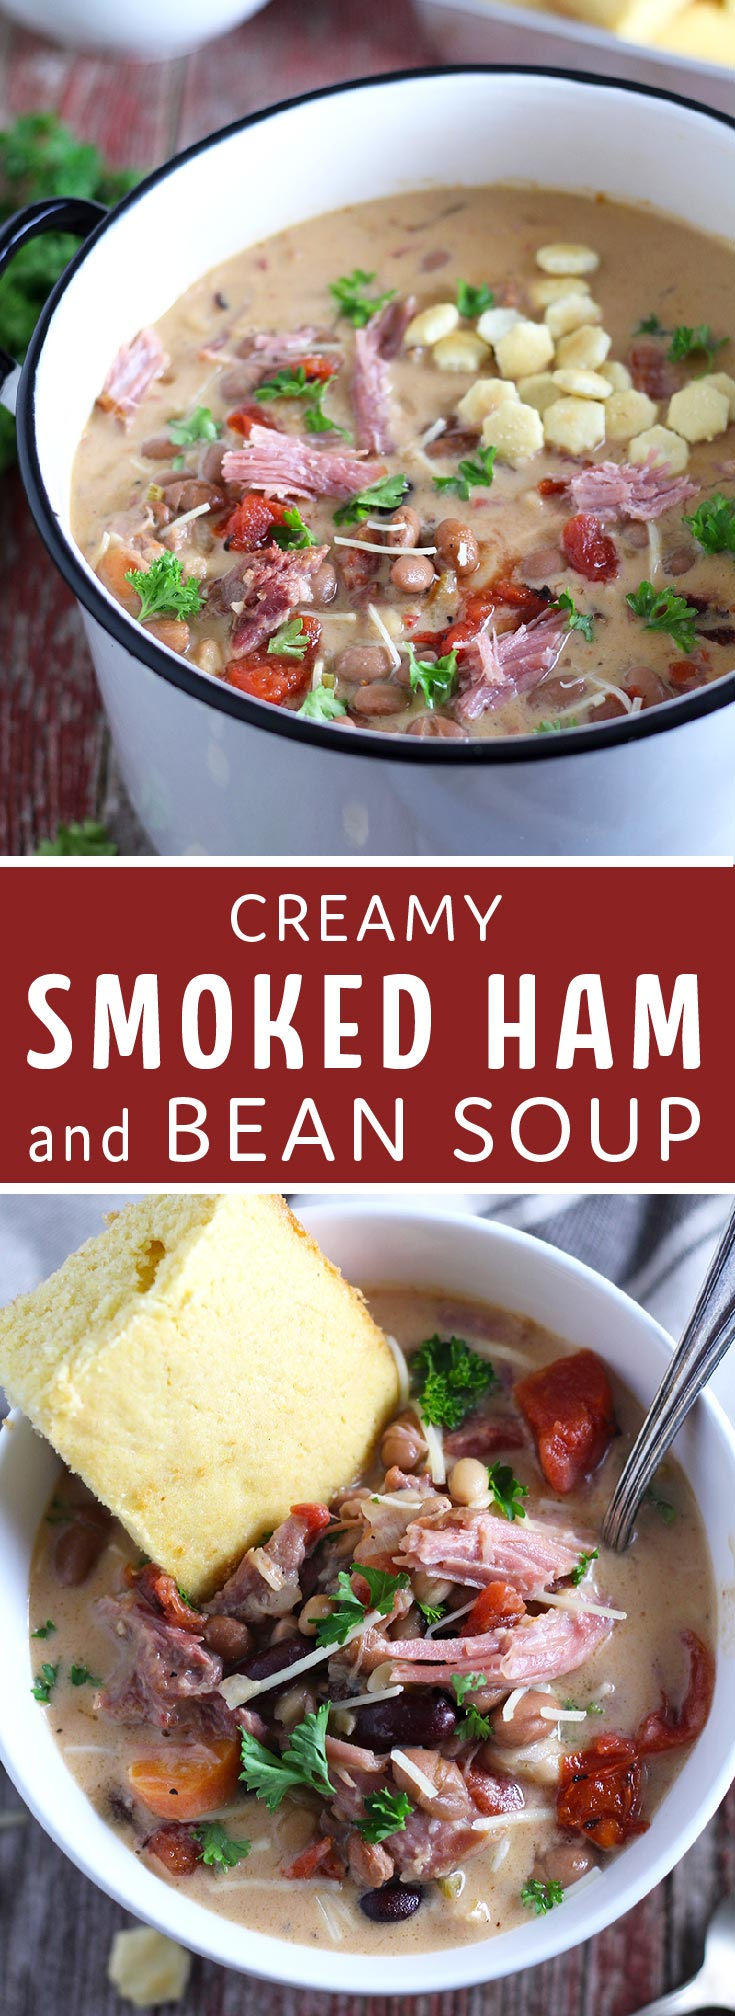 Easy-to-make, hearty soup packed with smoked ham and 6 kinds of beans. One of my favorite cold weather comfort foods!